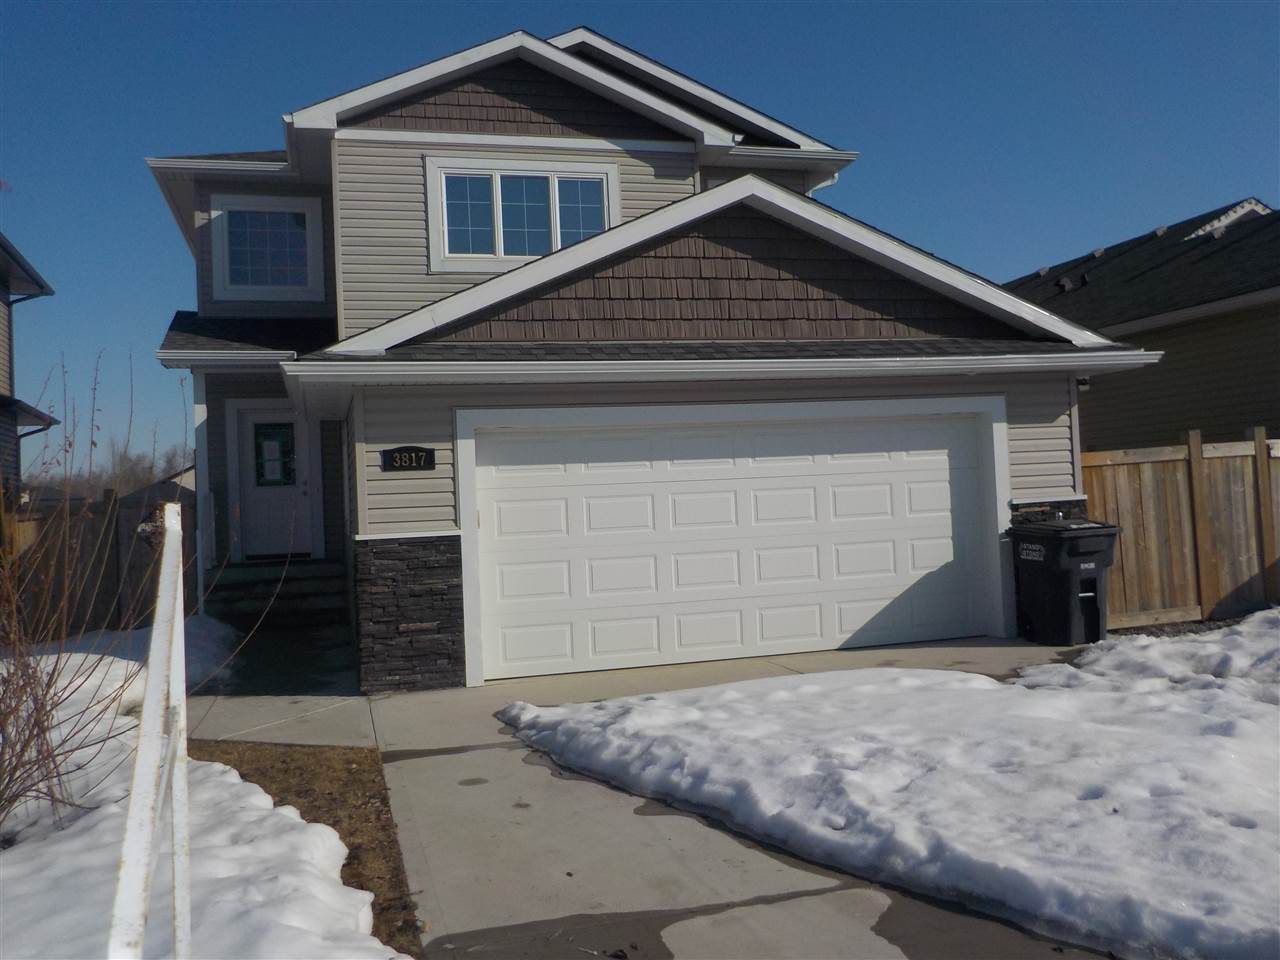 MLS® listing #E4149107 for sale located at 3817 52 Street